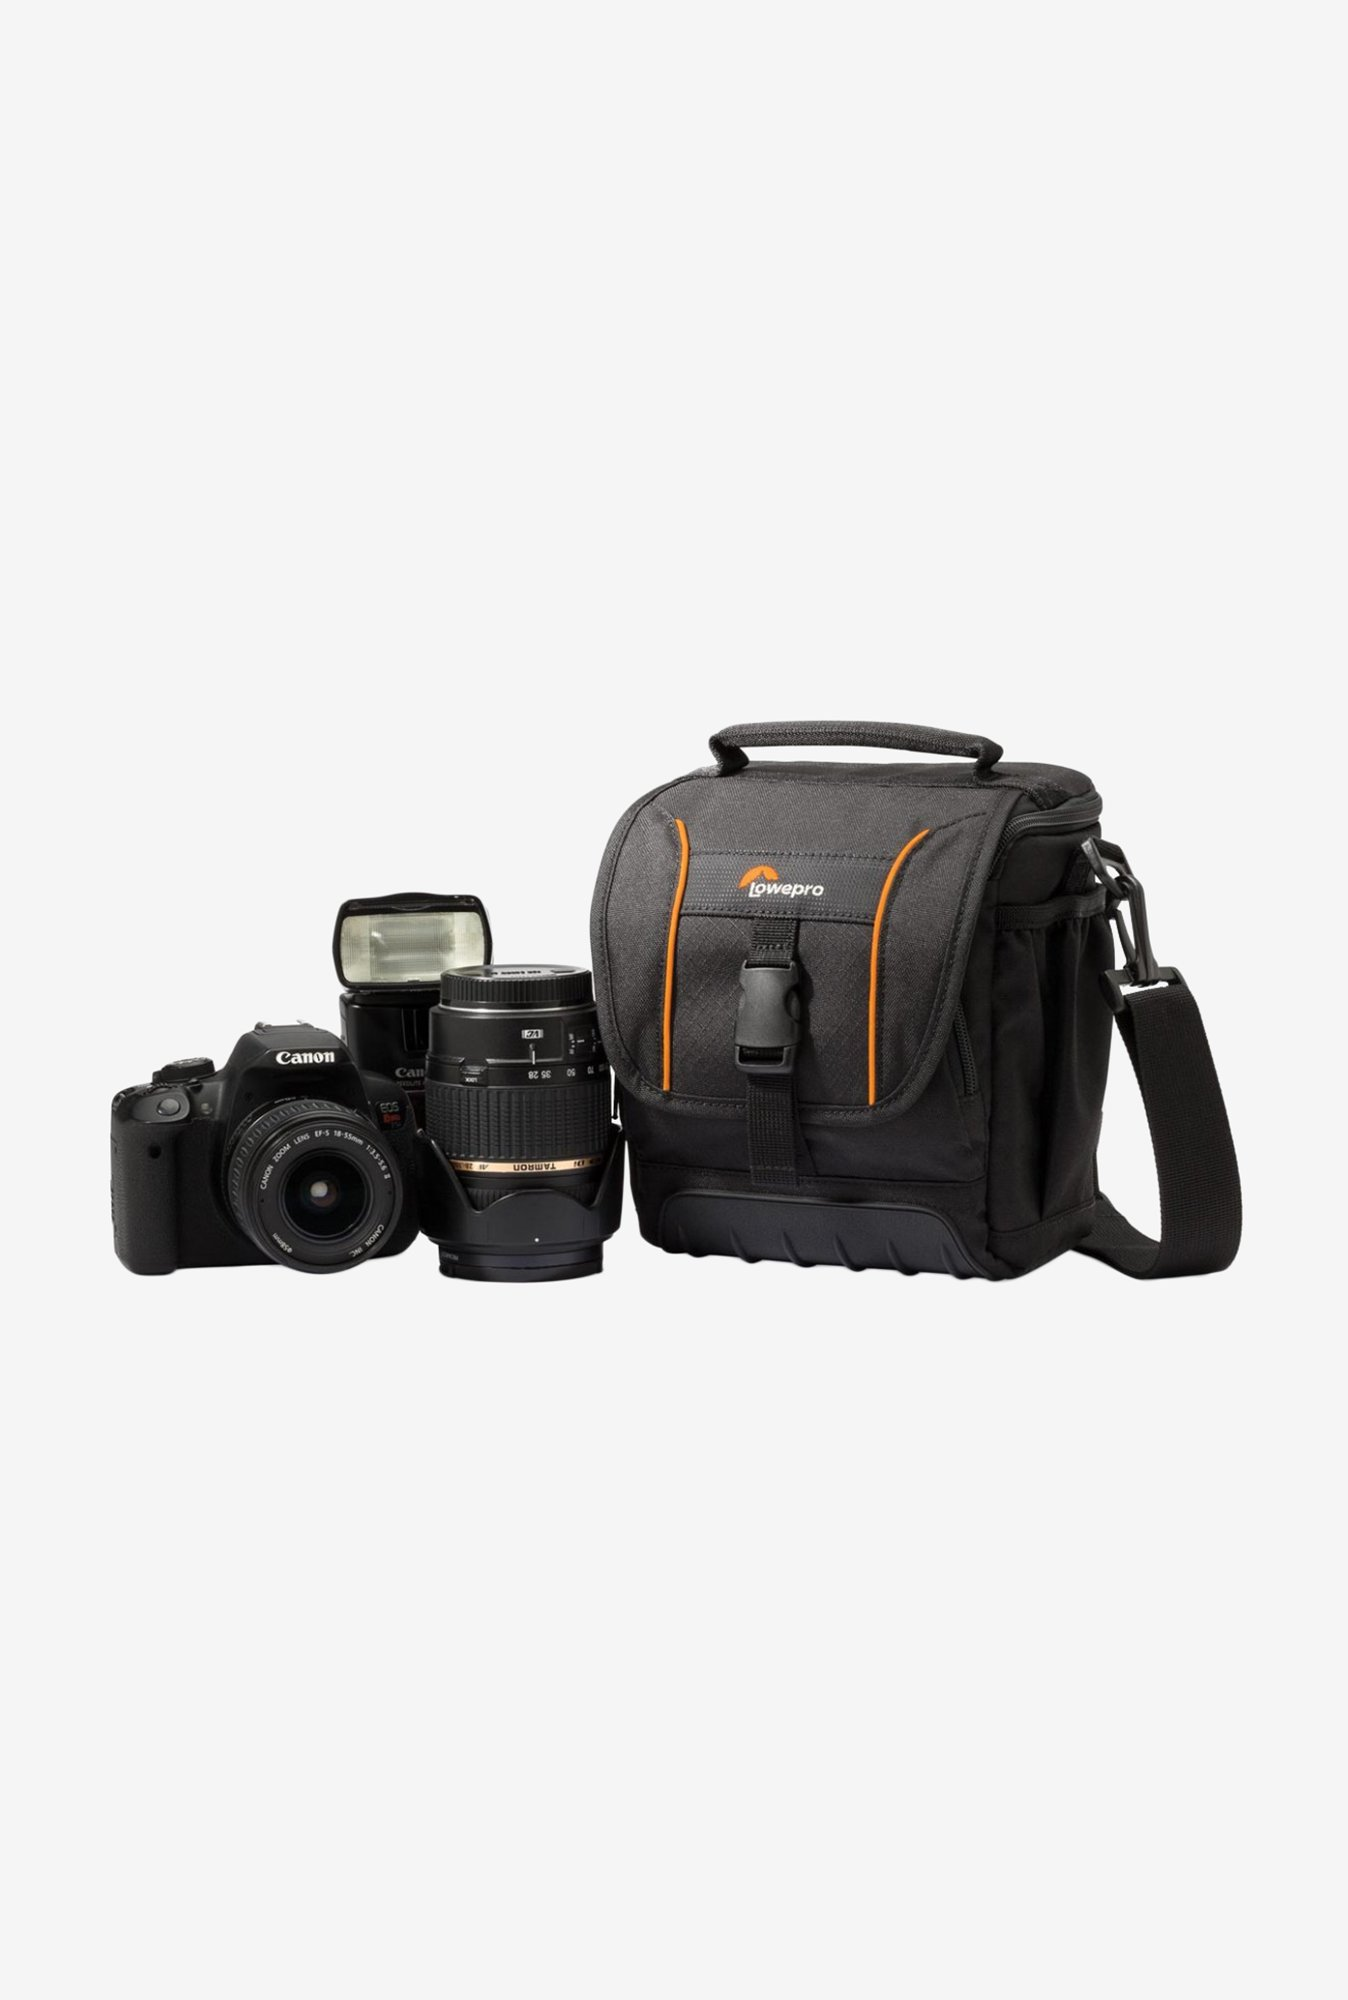 Lowepro Adventura SH-140 II Shoulder Bag Black